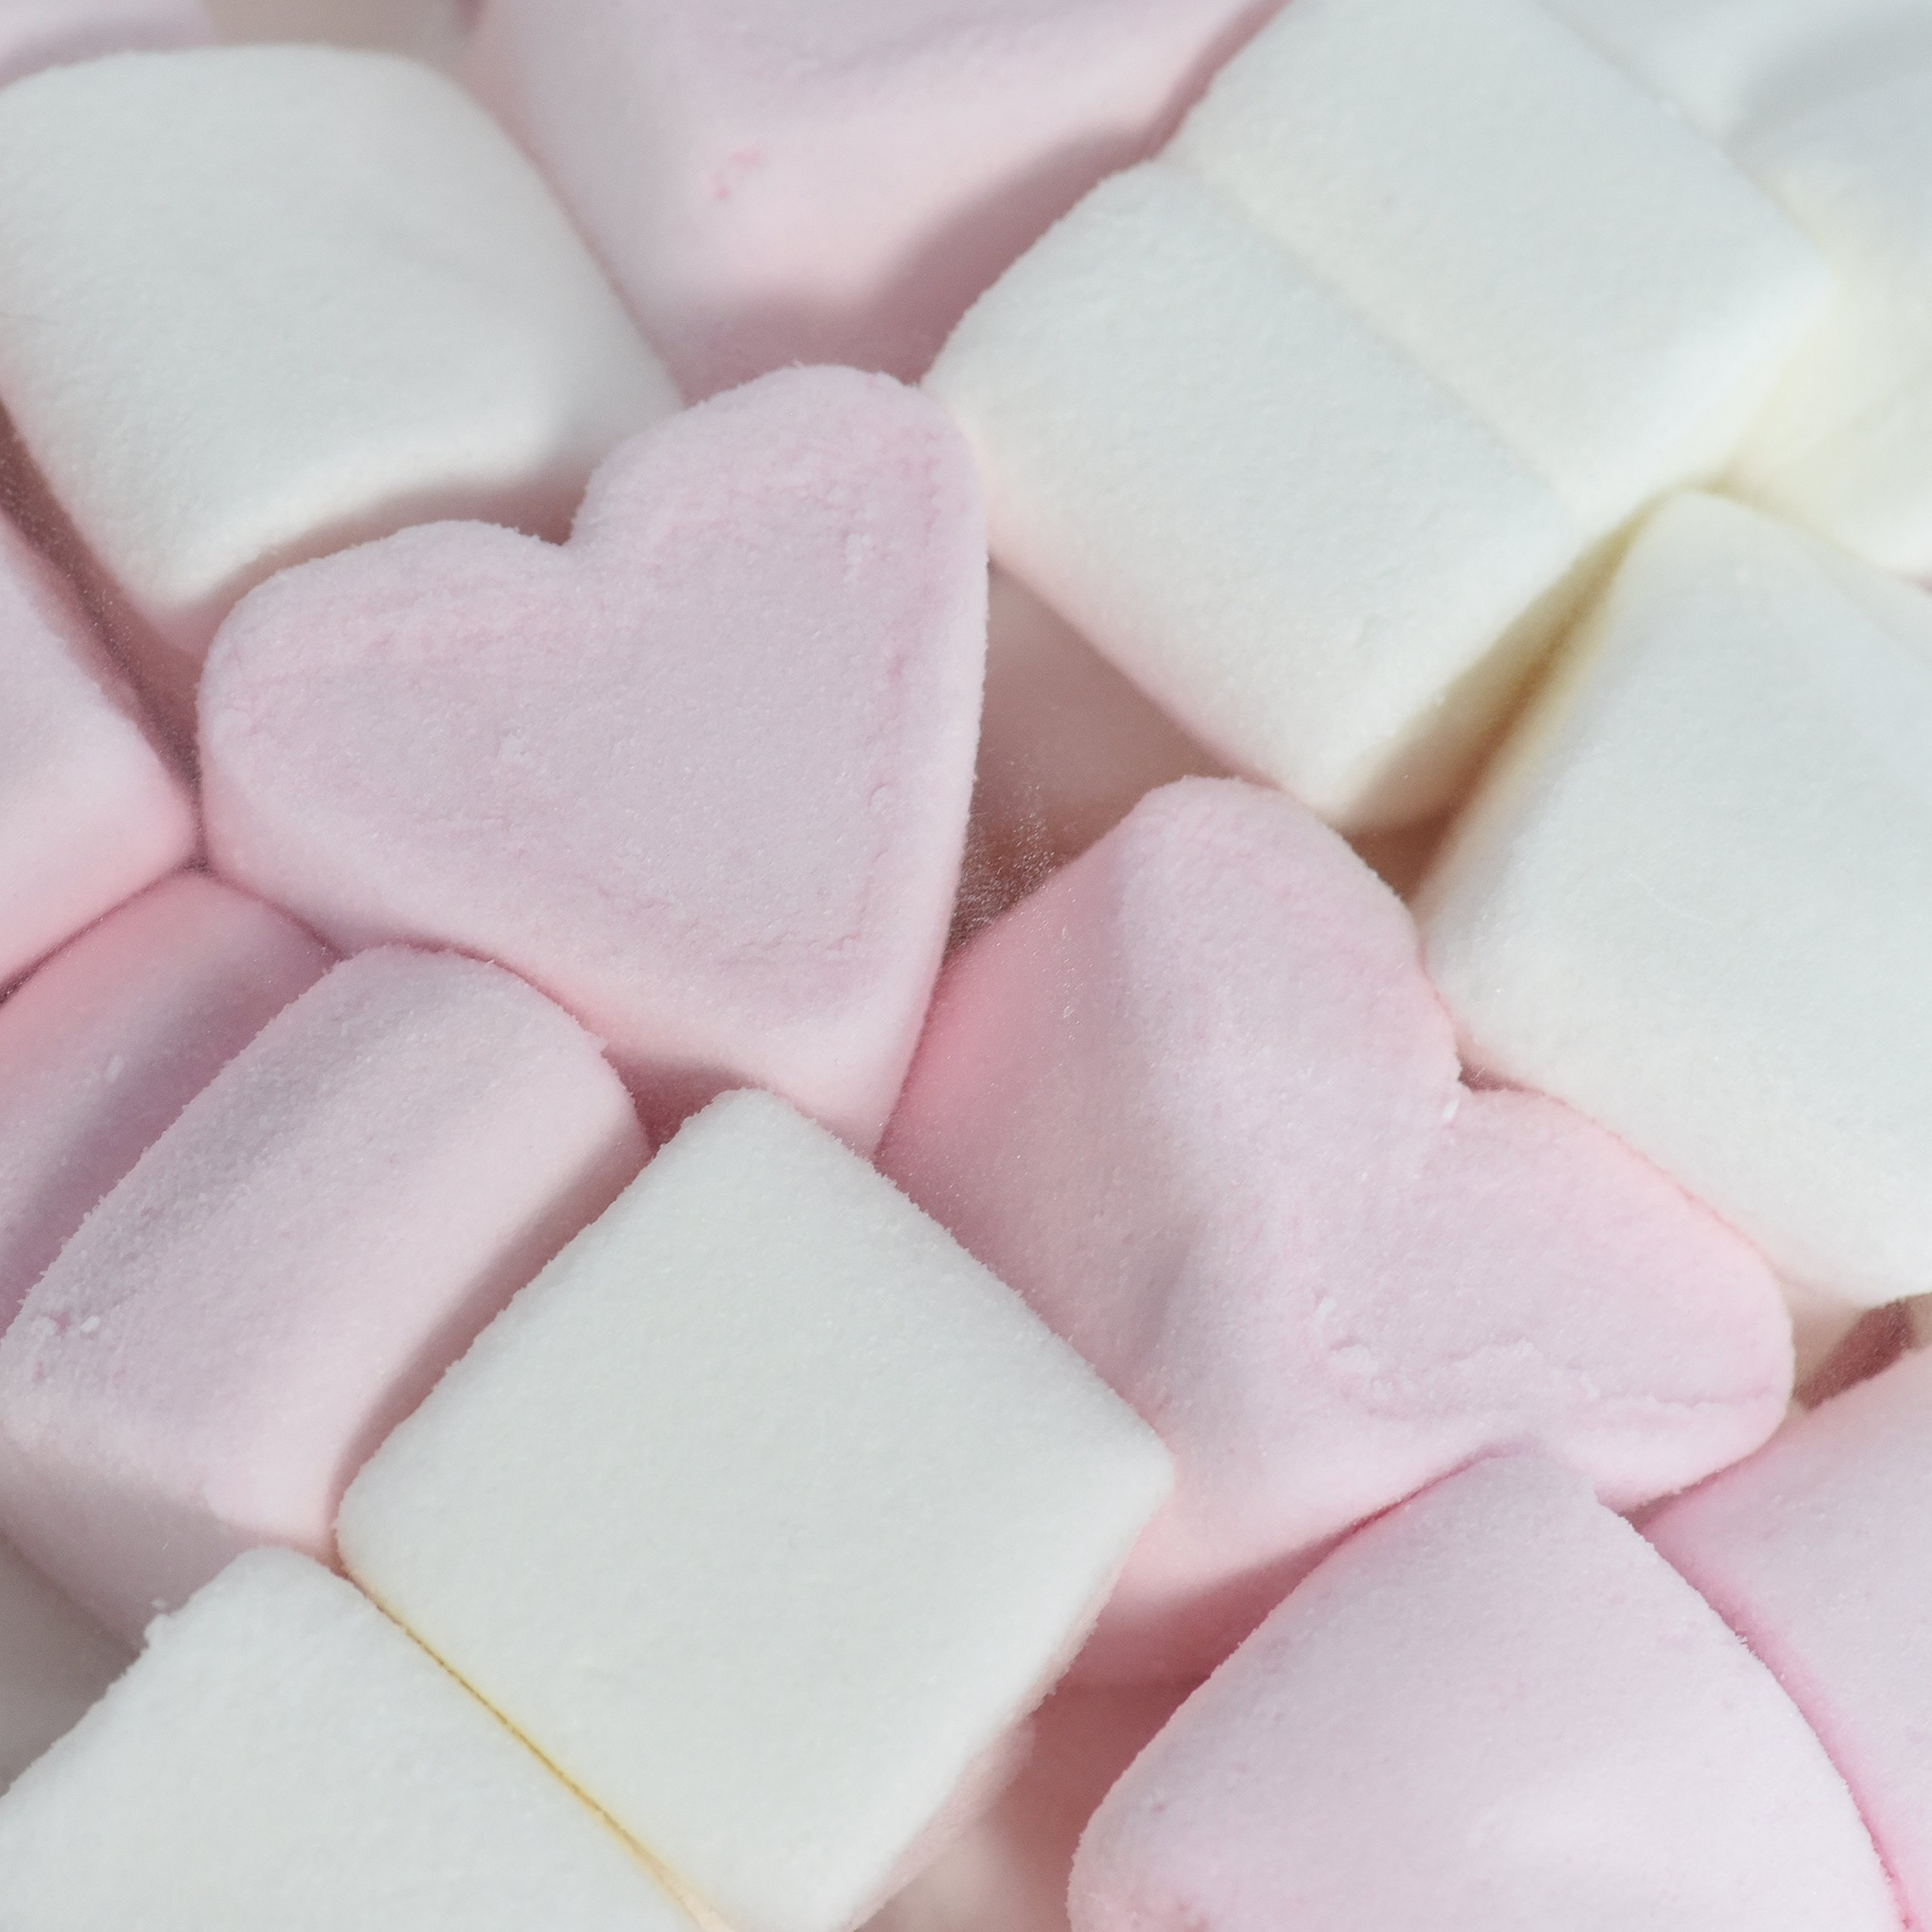 1 kg WeddingTree Marshmallow Hearts - Soft Candy for Wedding Party Valentine's Day Mother's Day - Best Foam Sugar Quality - Pink and White - Fat-Free